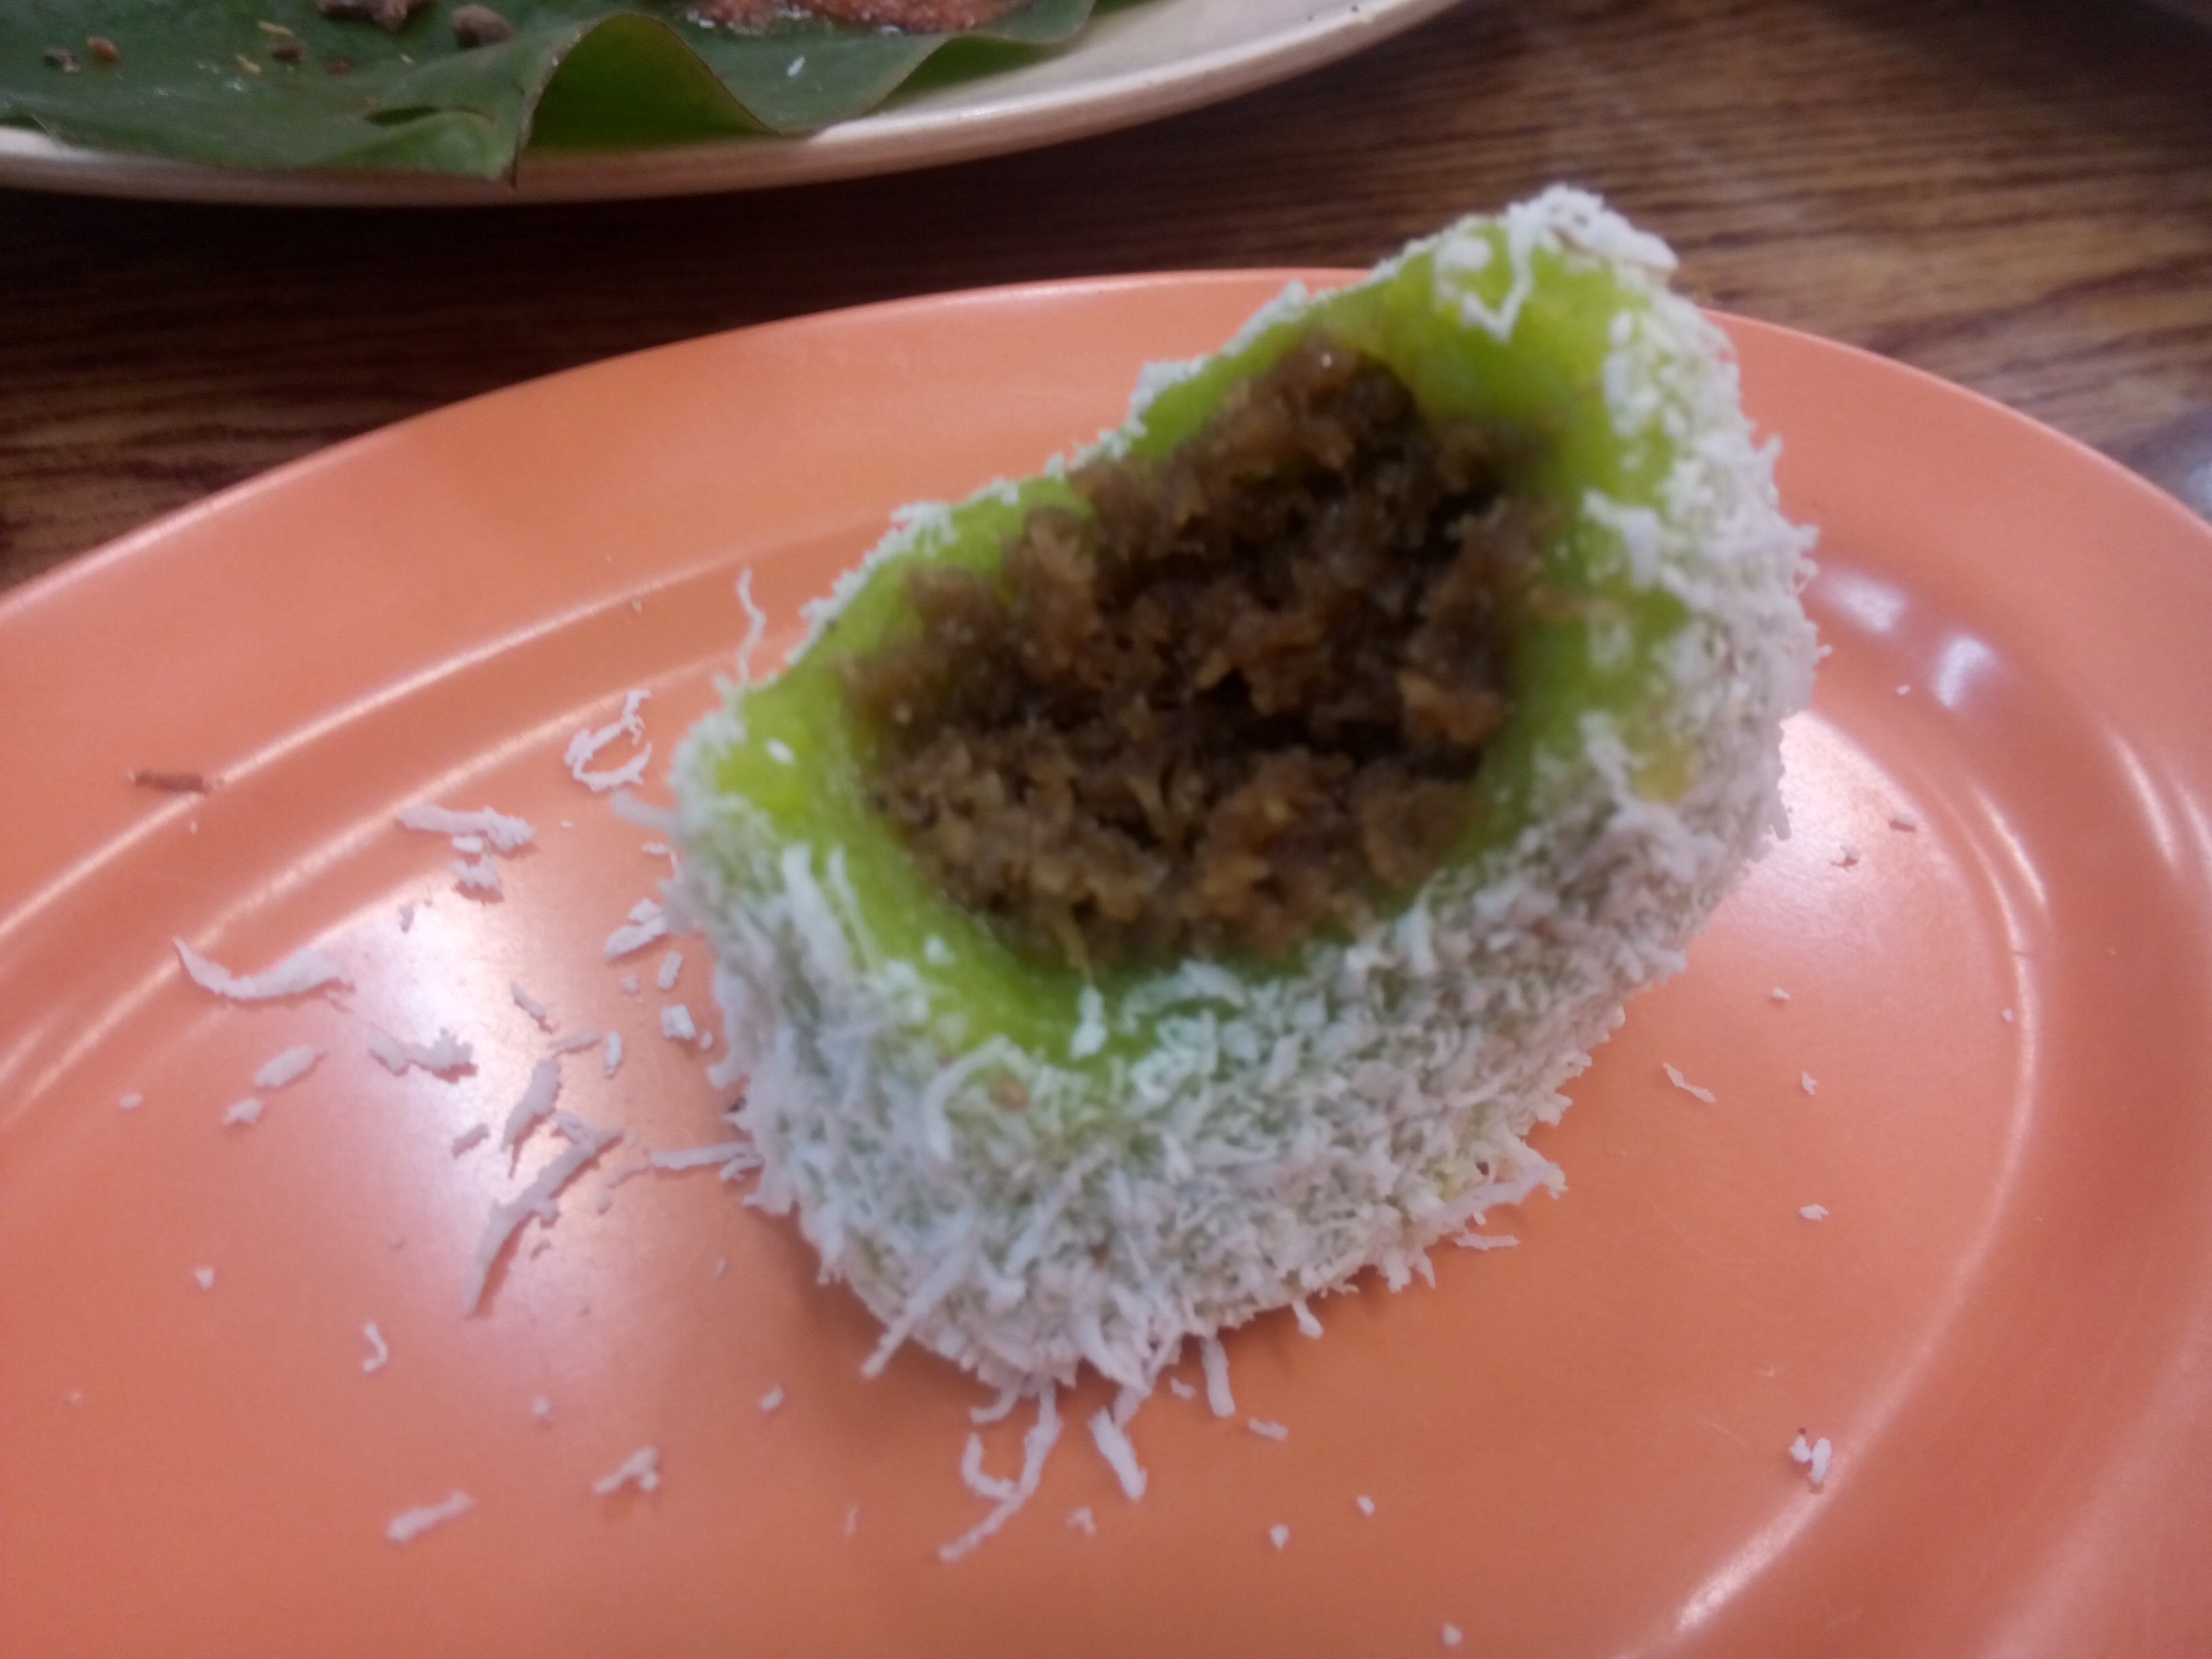 Coconut ball, bright green with brown mush inside